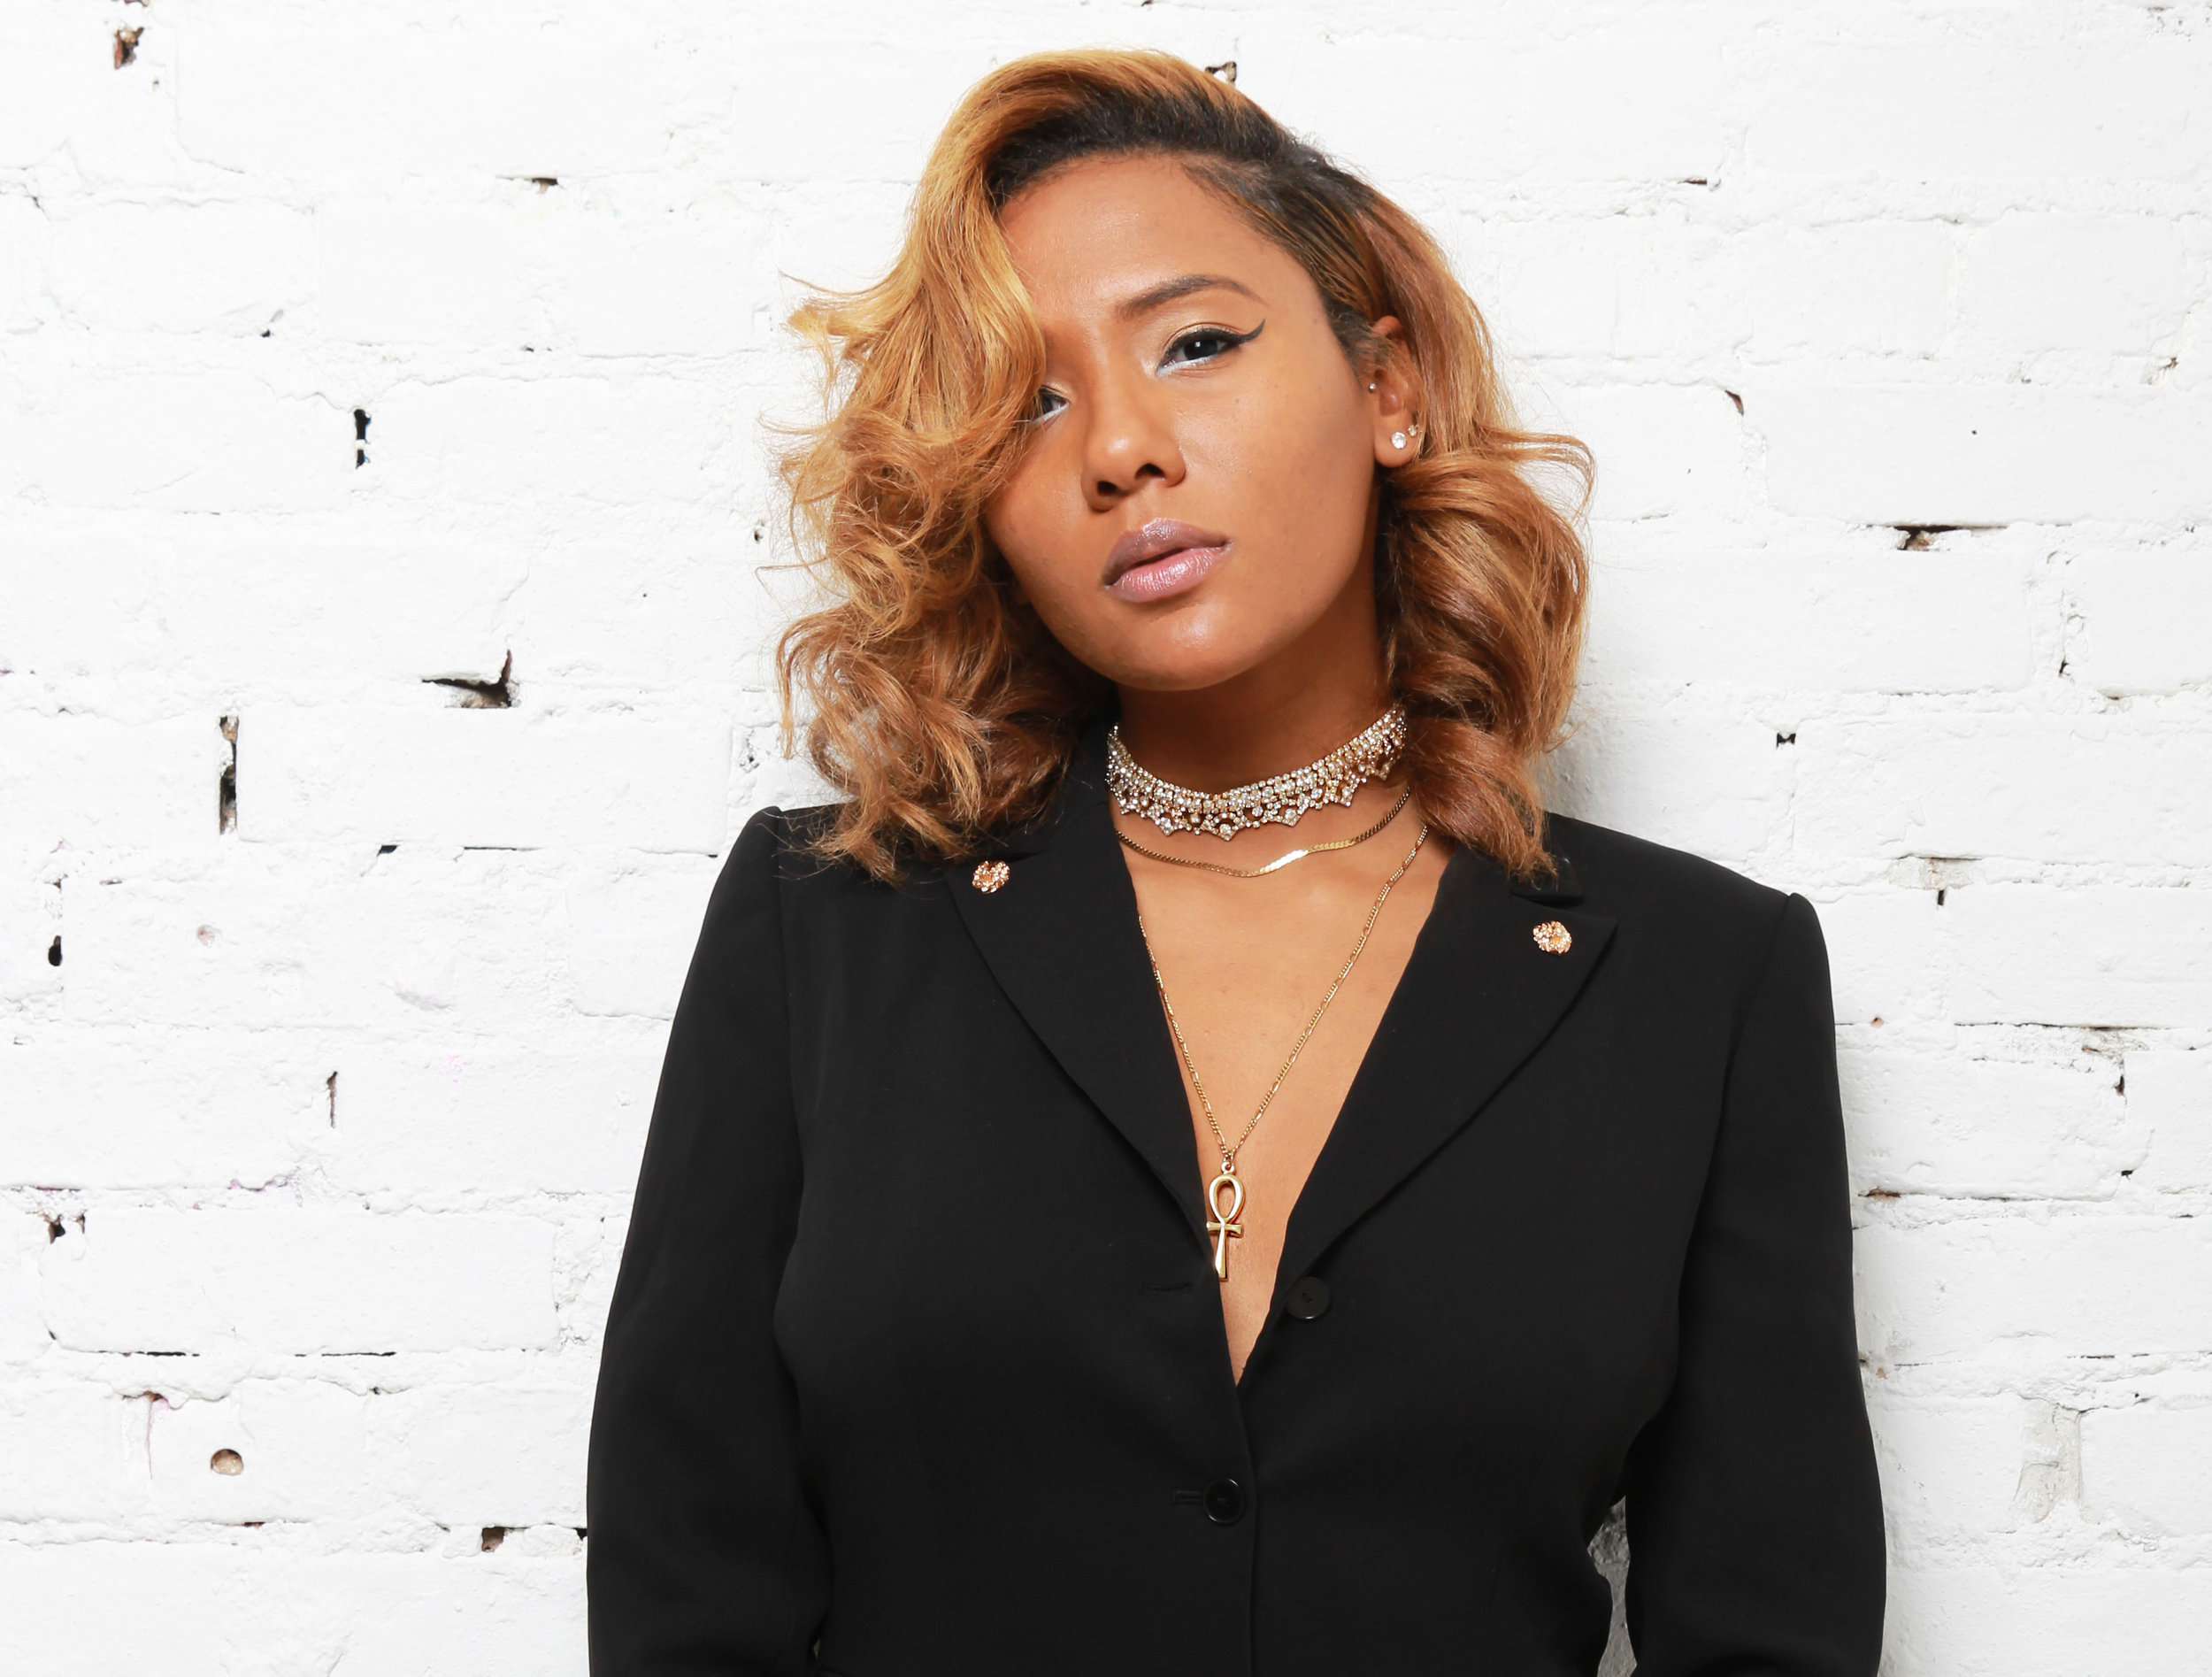 Tatiana Ilia   Founder of her own jewelry accessory line,  Iila , Tatiana Ilia designs costume to fine jewelry herself. Wearing her jewelry will have you feeling beautiful, empowered, and stylish!  Click on her name or her photo to read more!